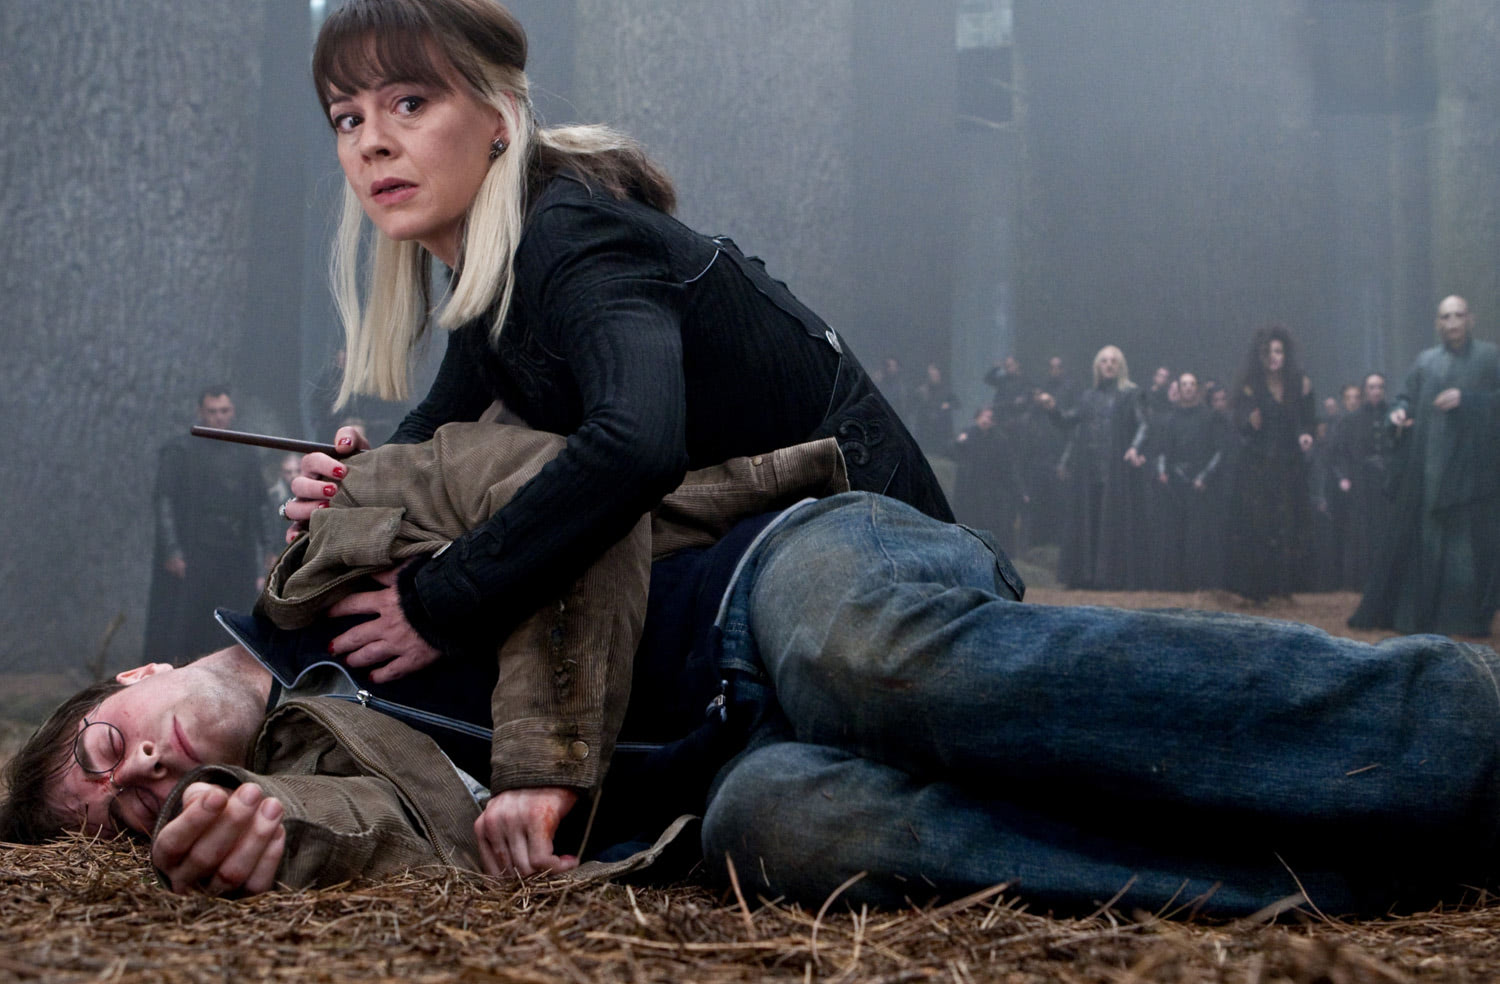 Narcissa Malfoy inspects Harry